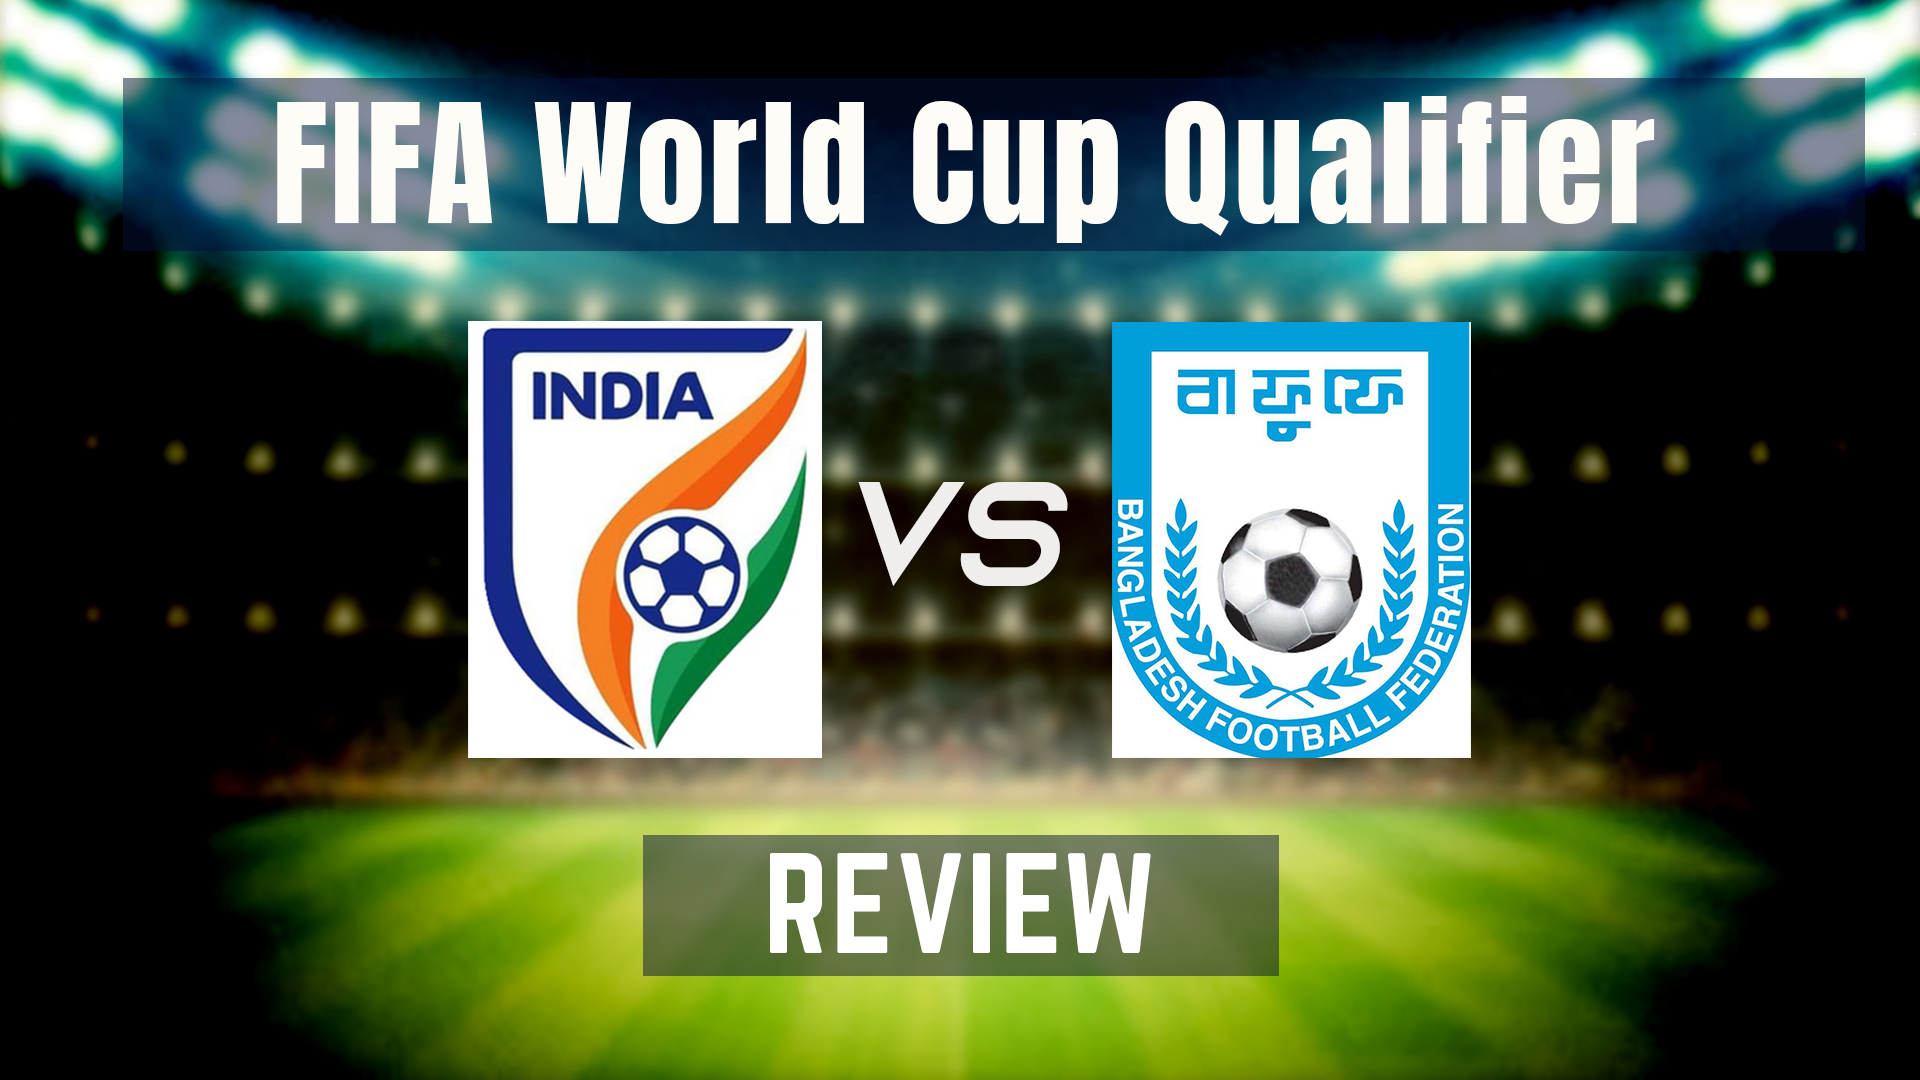 India vs Bangladesh FIFA World Cup qualifier football match analysis